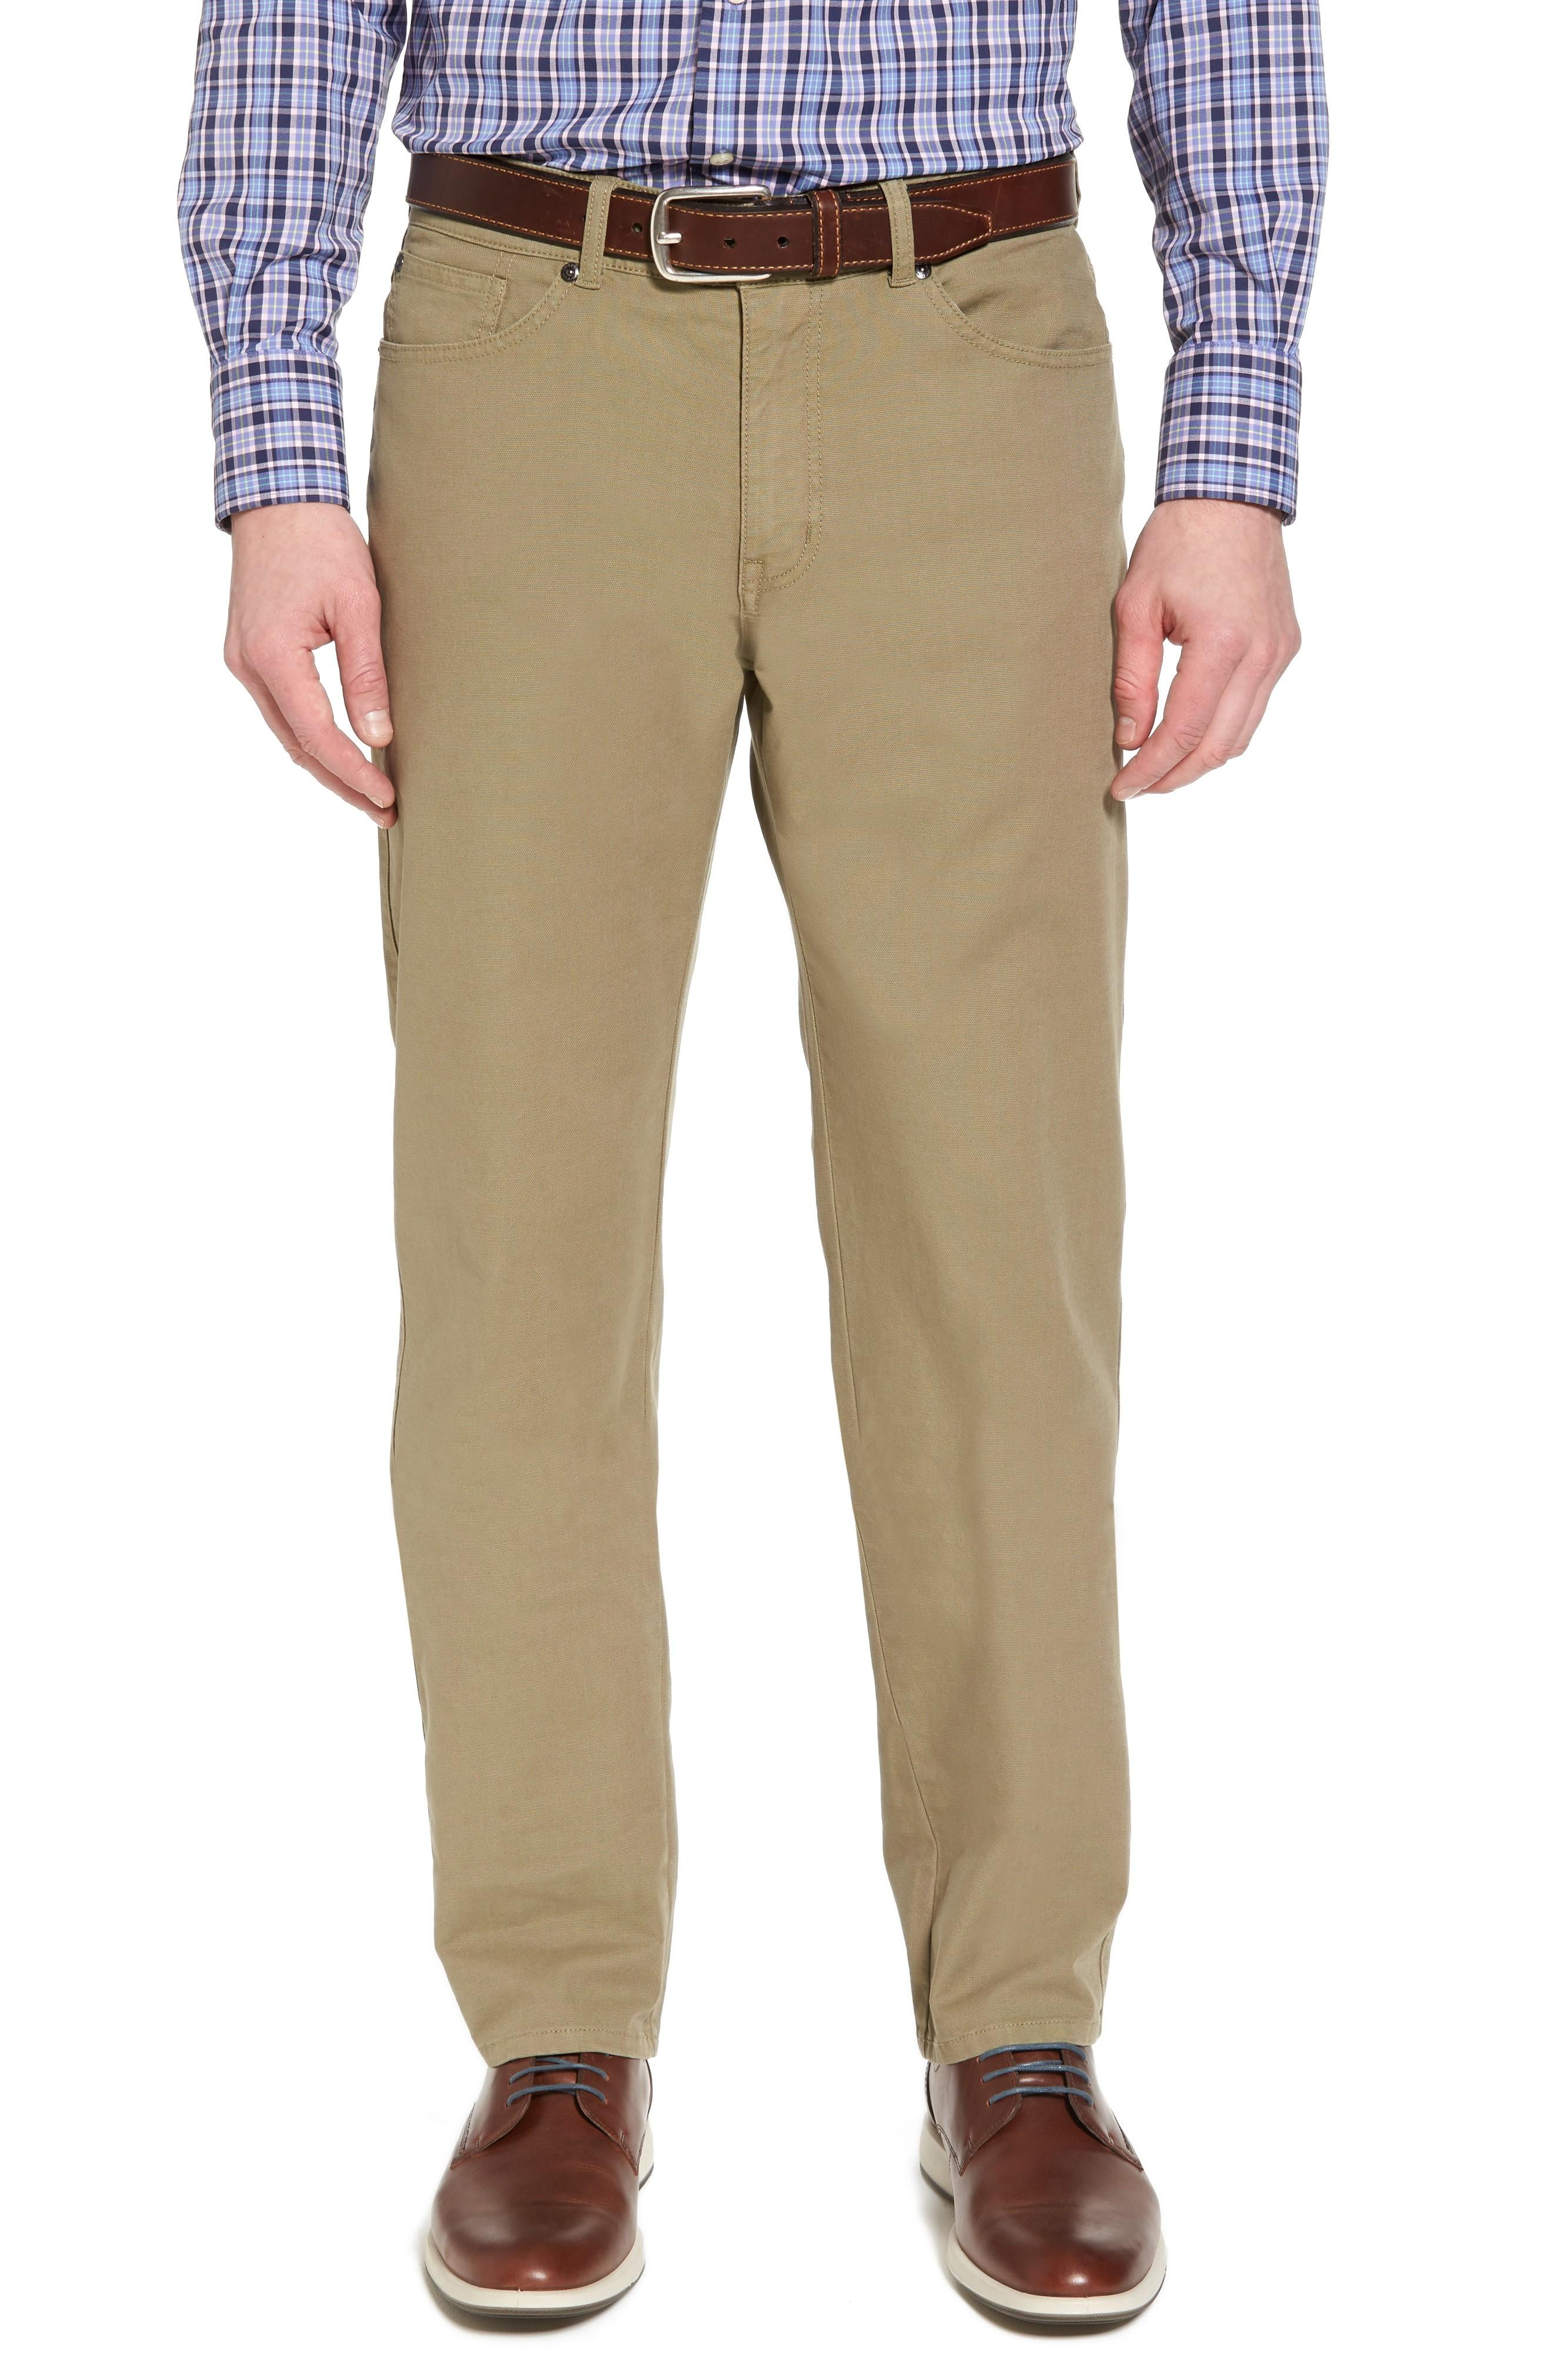 fd8094d69bc9 Five-pocket styling and durable cotton canvas construction bring laid-back  attitude to slim straight-leg pants that are a refreshing changeup from  your ...